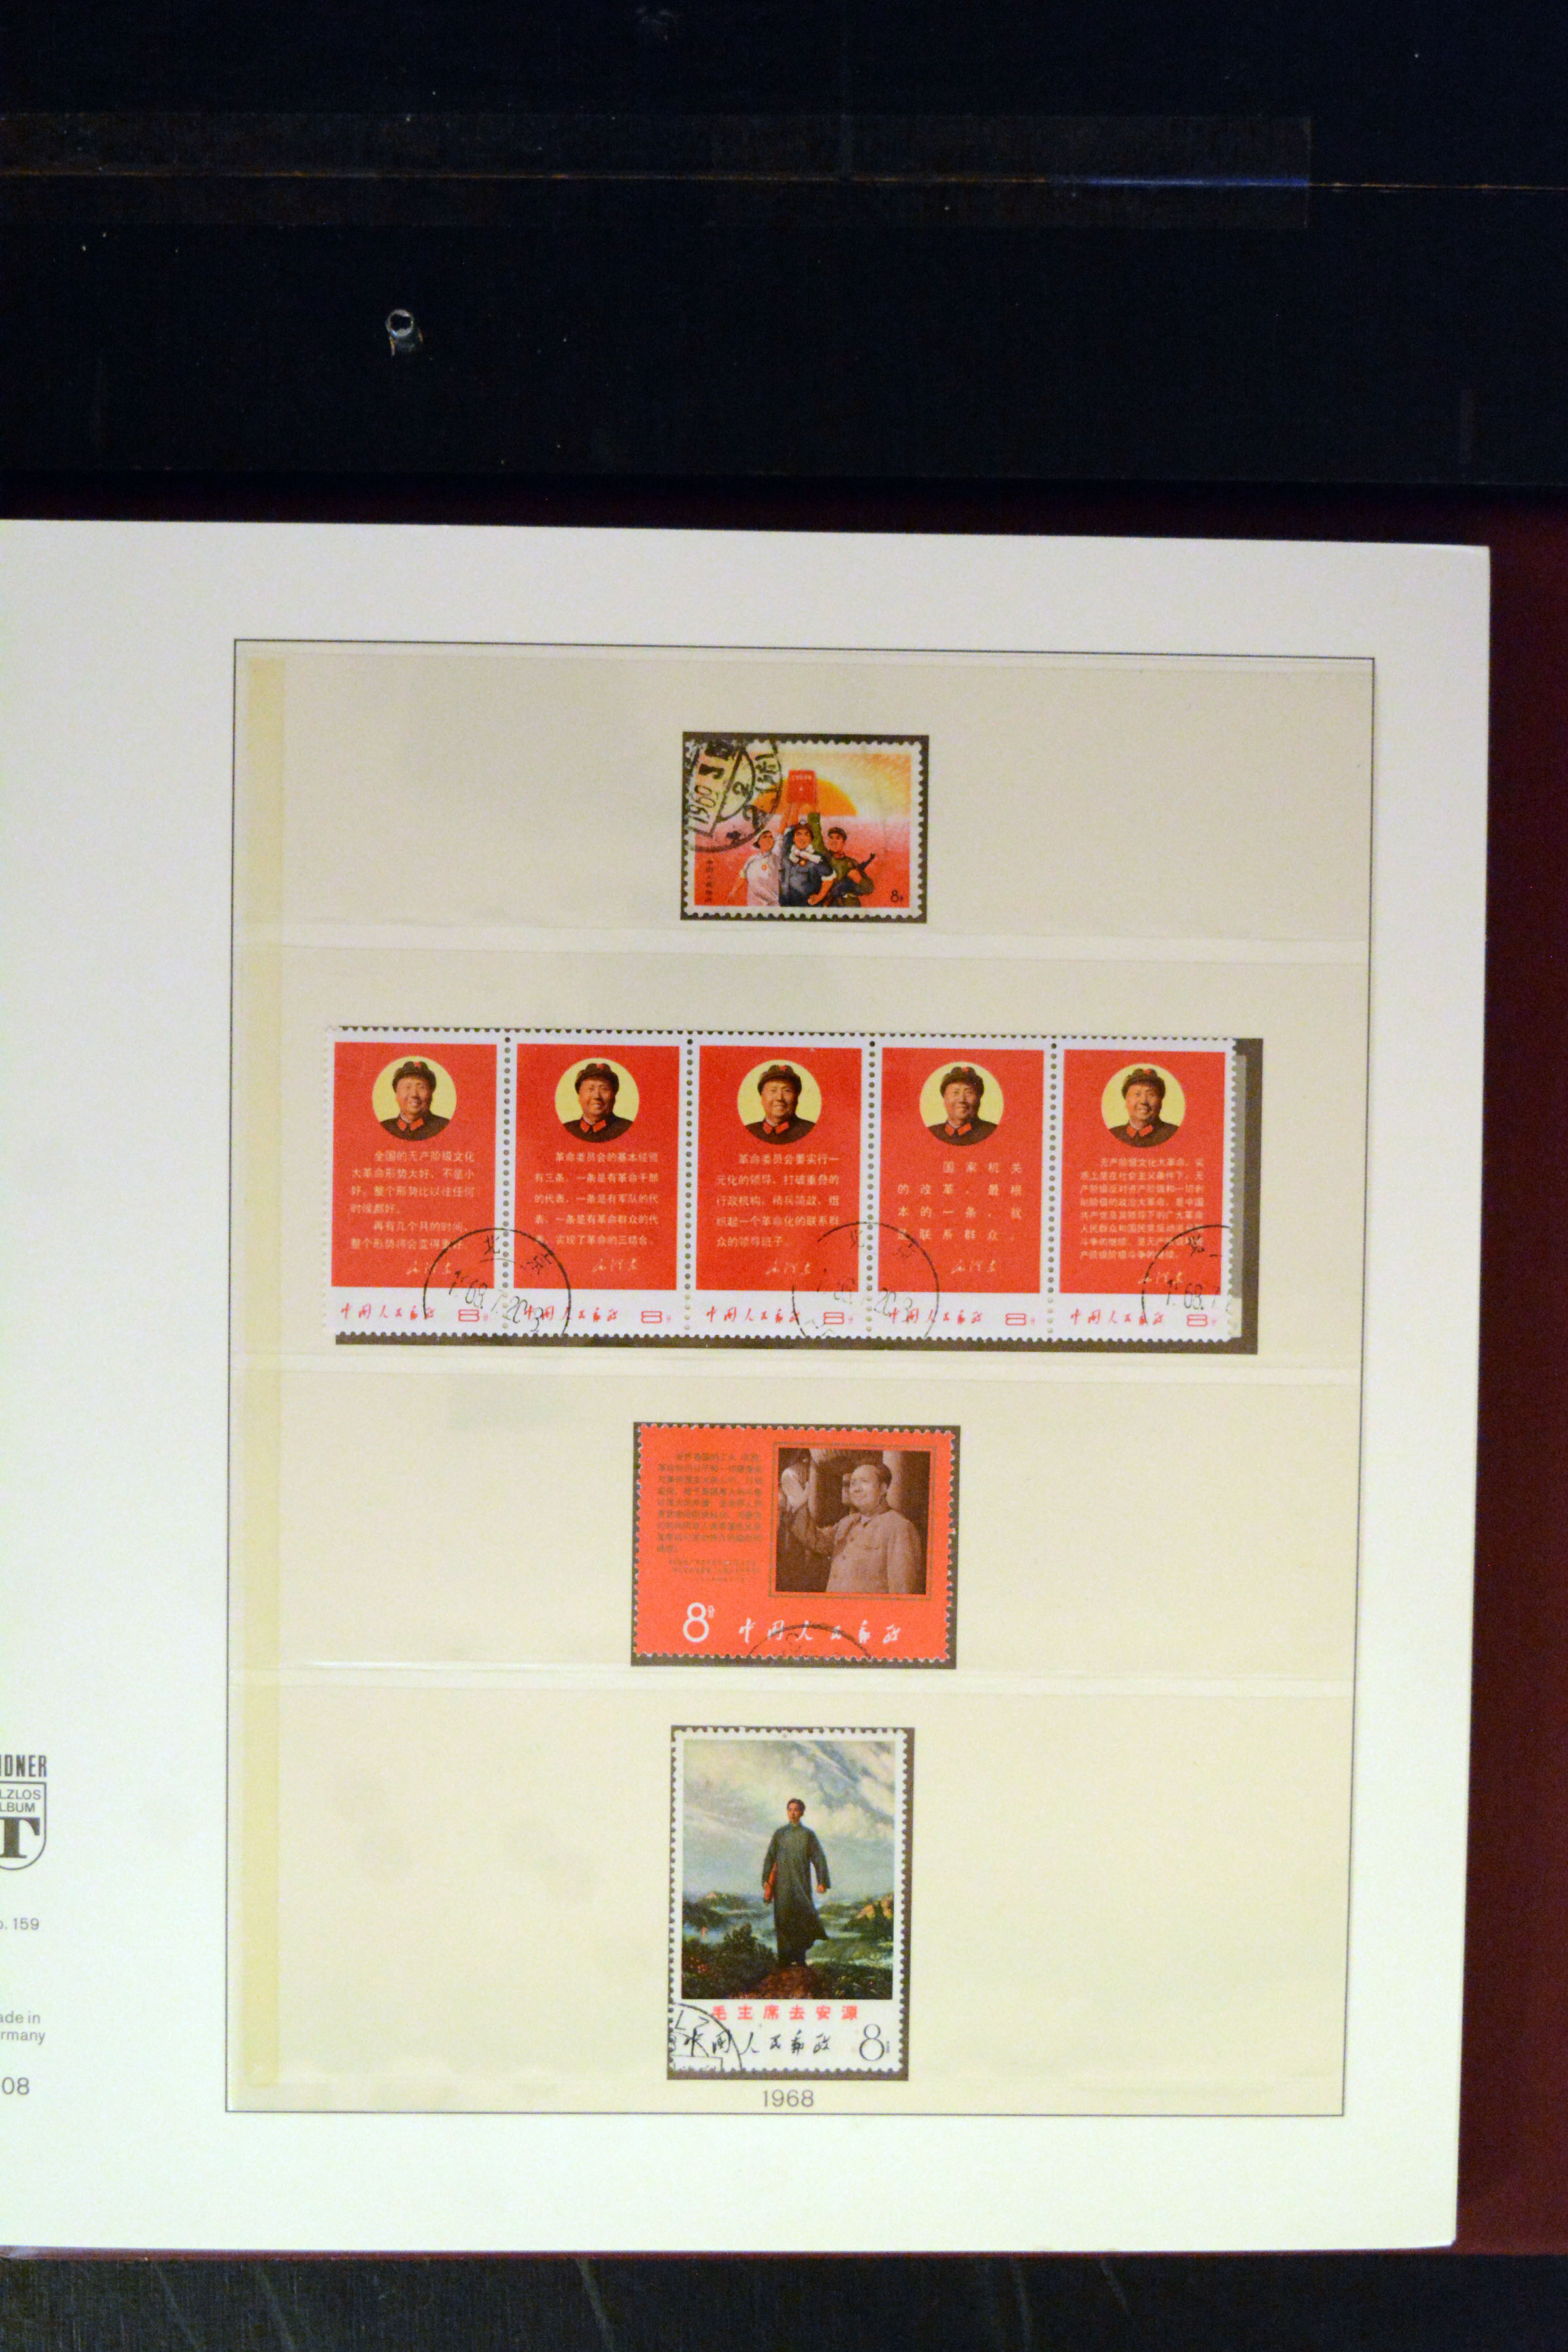 Lot 3320 - Overseas People's Republic of China -  Heinrich Koehler Auktionen Auction #371- Day 3